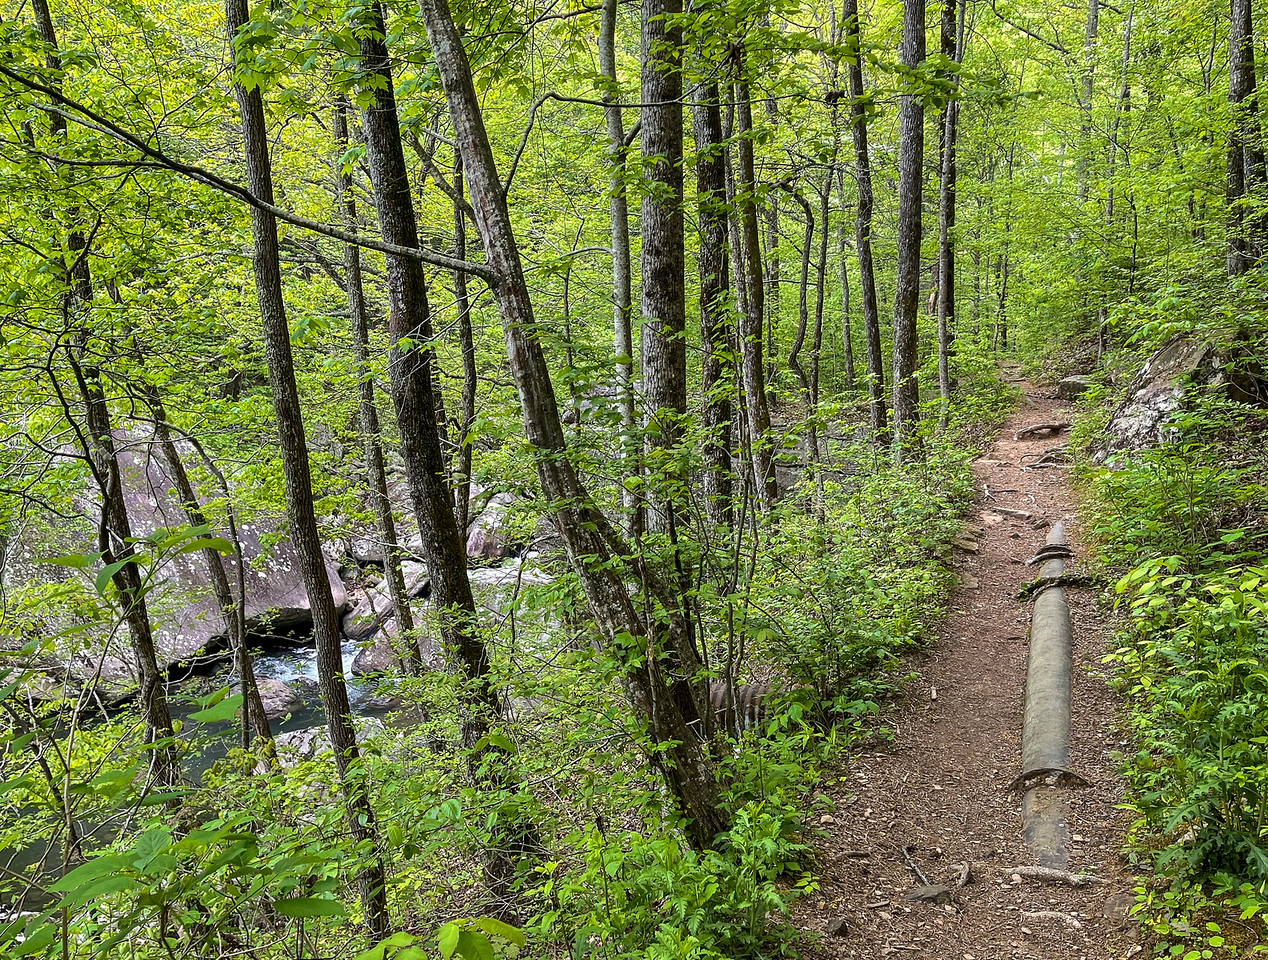 The trail with the creek on the left.